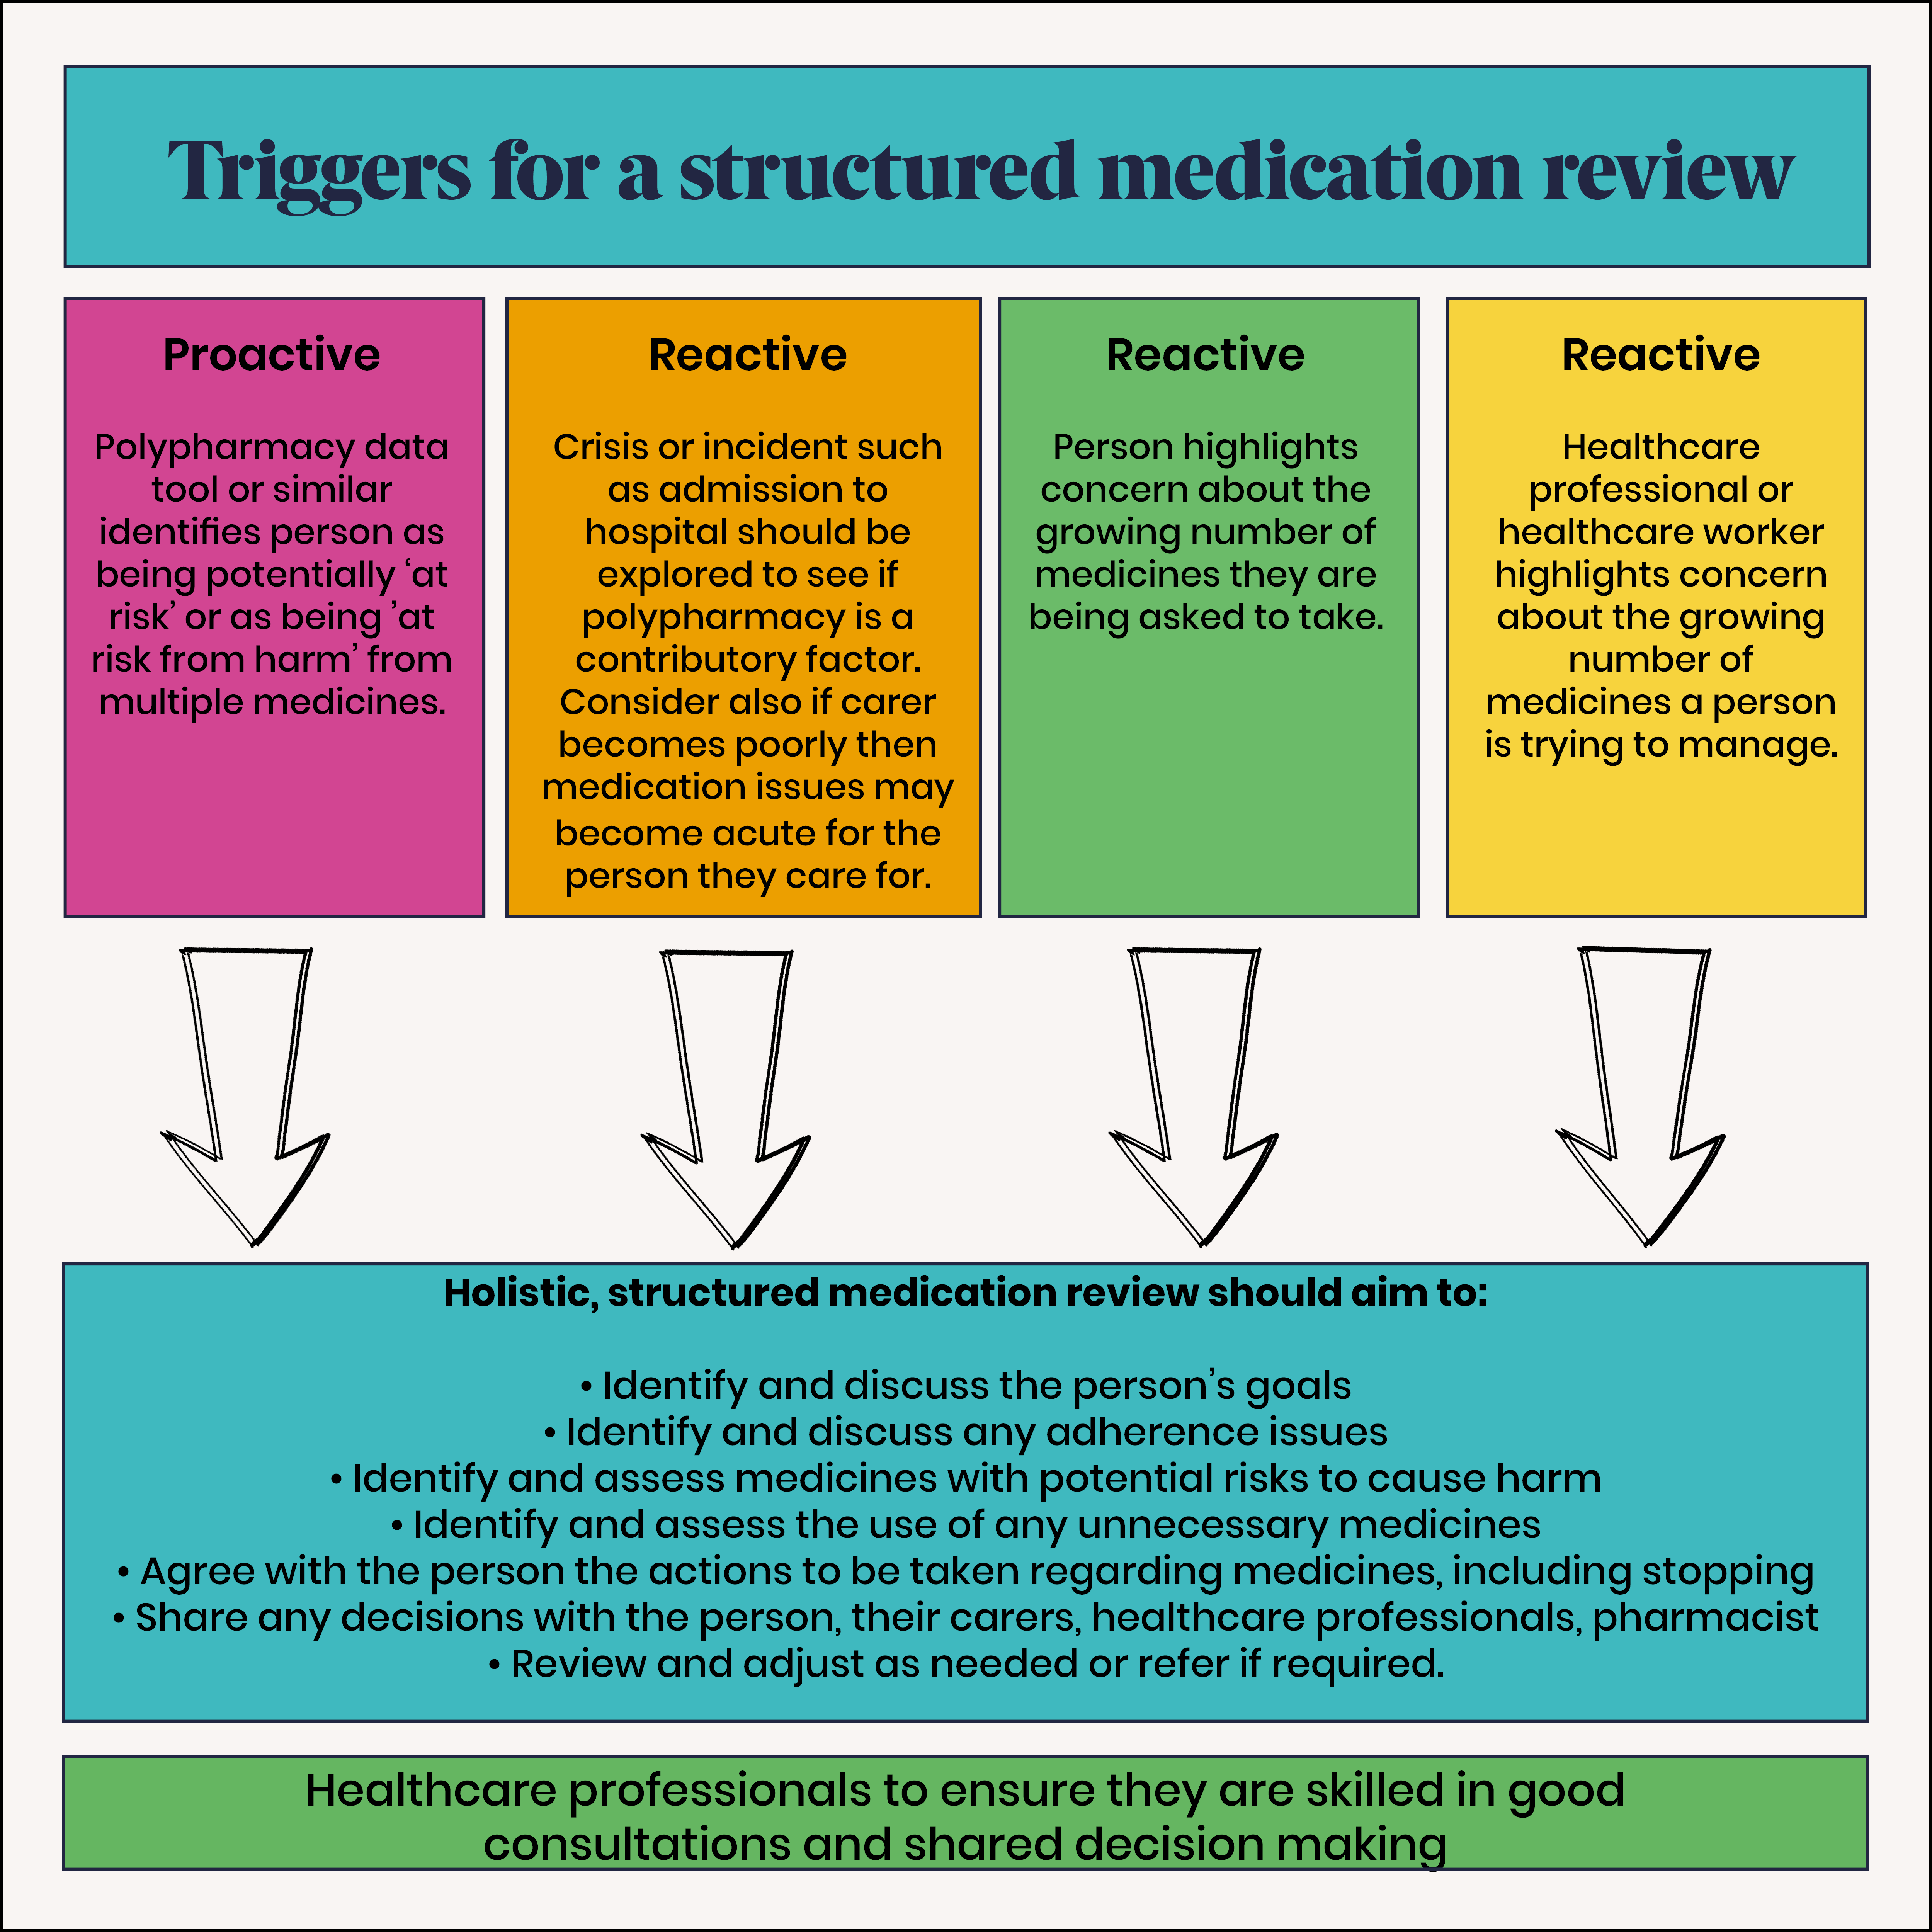 5. Triggers for a structured medication review2